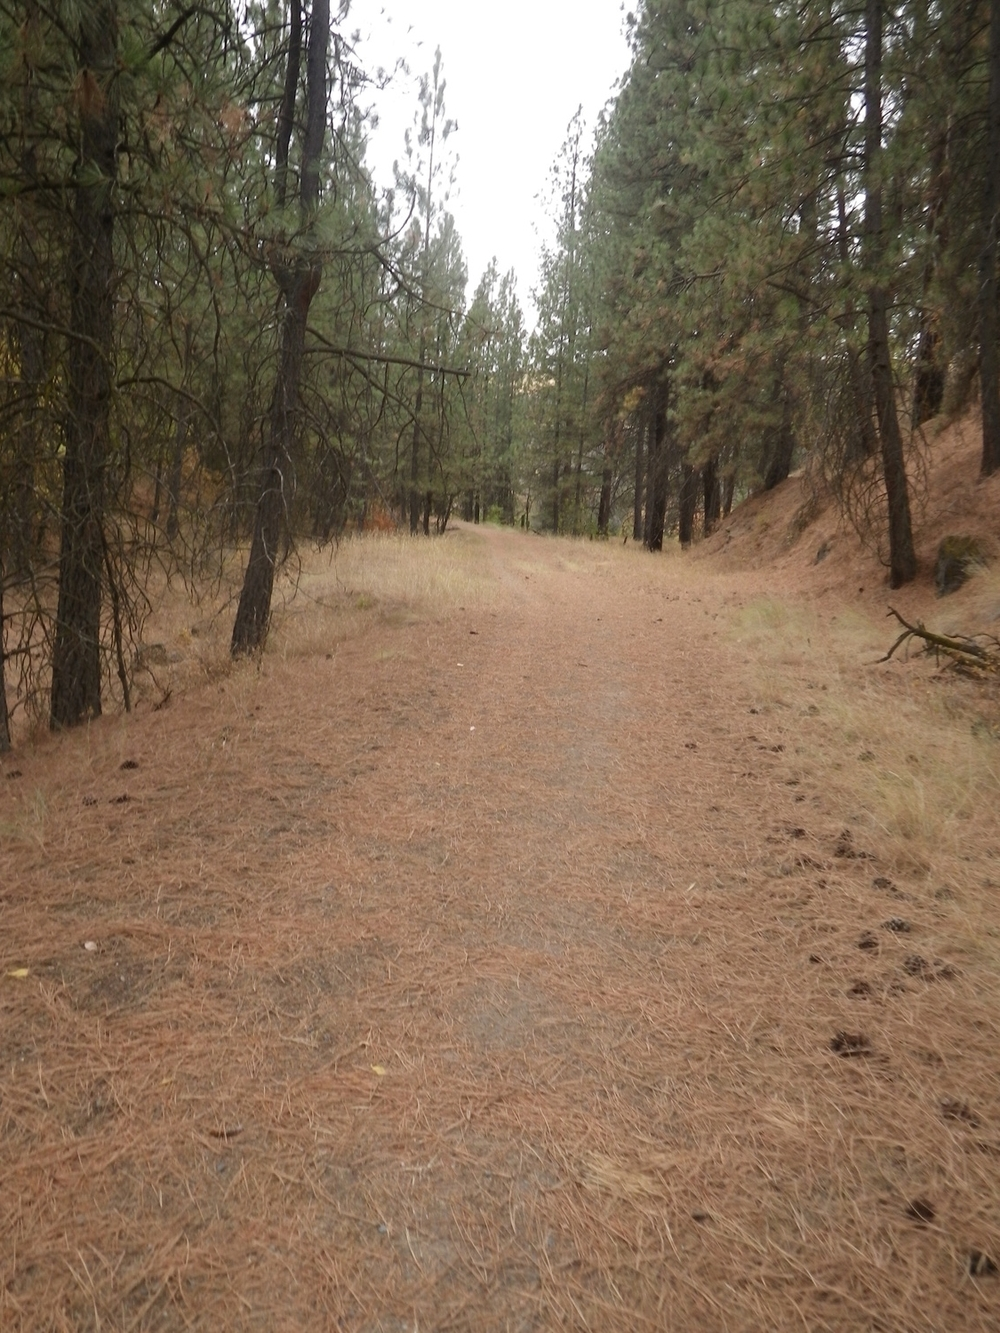 The footing is varied but mostly good. Watch for the occasional rock. Also, bear, deer, elk, and cow poop. The Colfax Rail Trail just after the abandoned trestle.